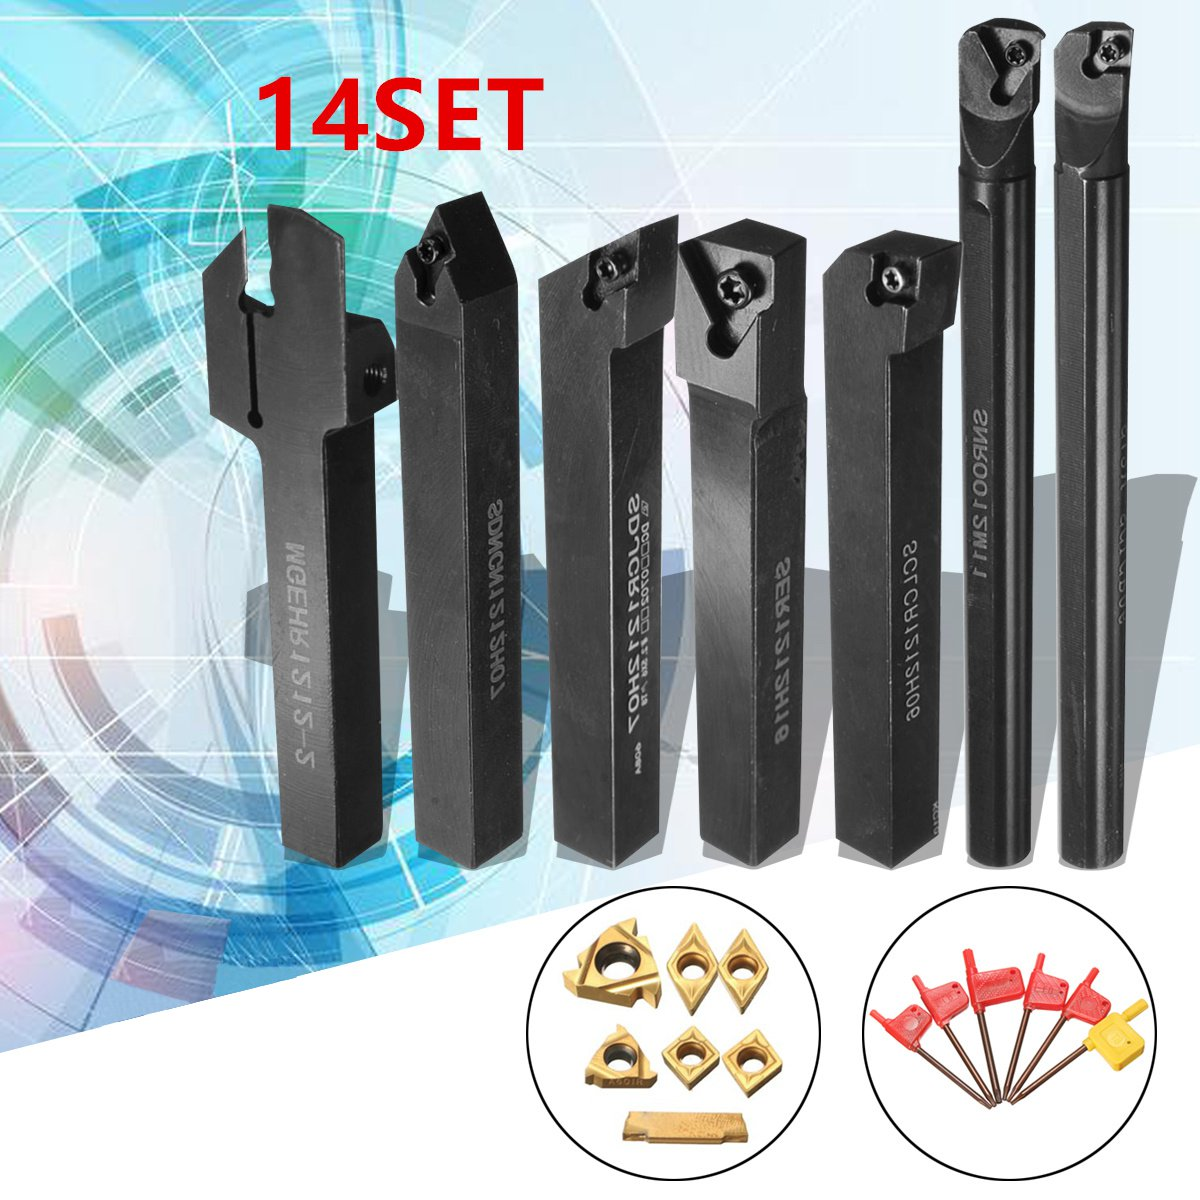 12mm 21Pcs/Set Shank Lathe Turning Tool Holder Boring Bar +Insert+Wrench S12M-SCLCR06/SER1212H16/SCL1212H06 solid carbide c12q sclcr09 180mm hot sale sclcr lathe turning holder boring bar insert for semi finishing